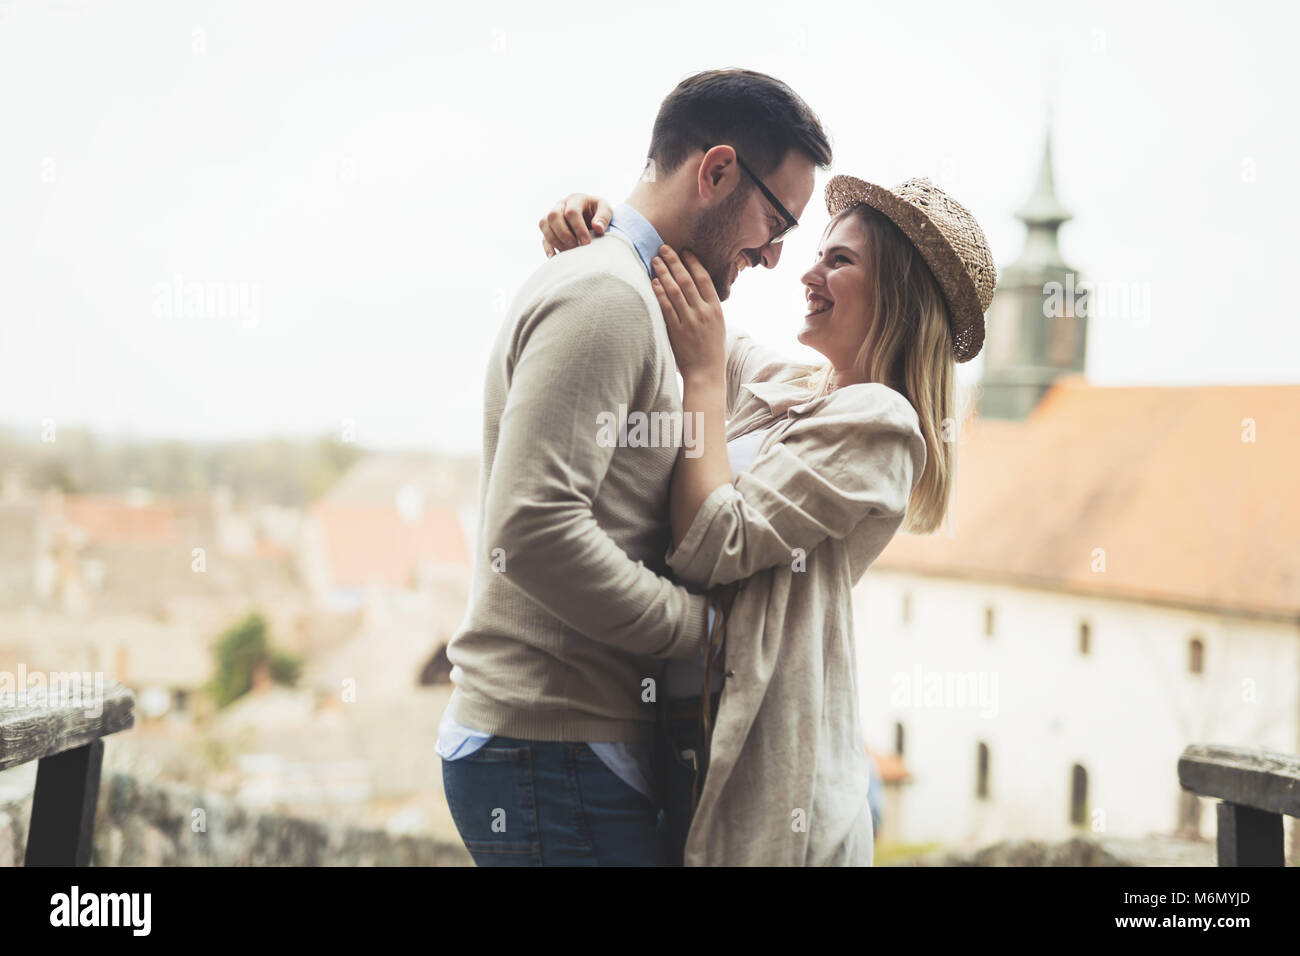 True love soulmates intimate at park and happy - Stock Image